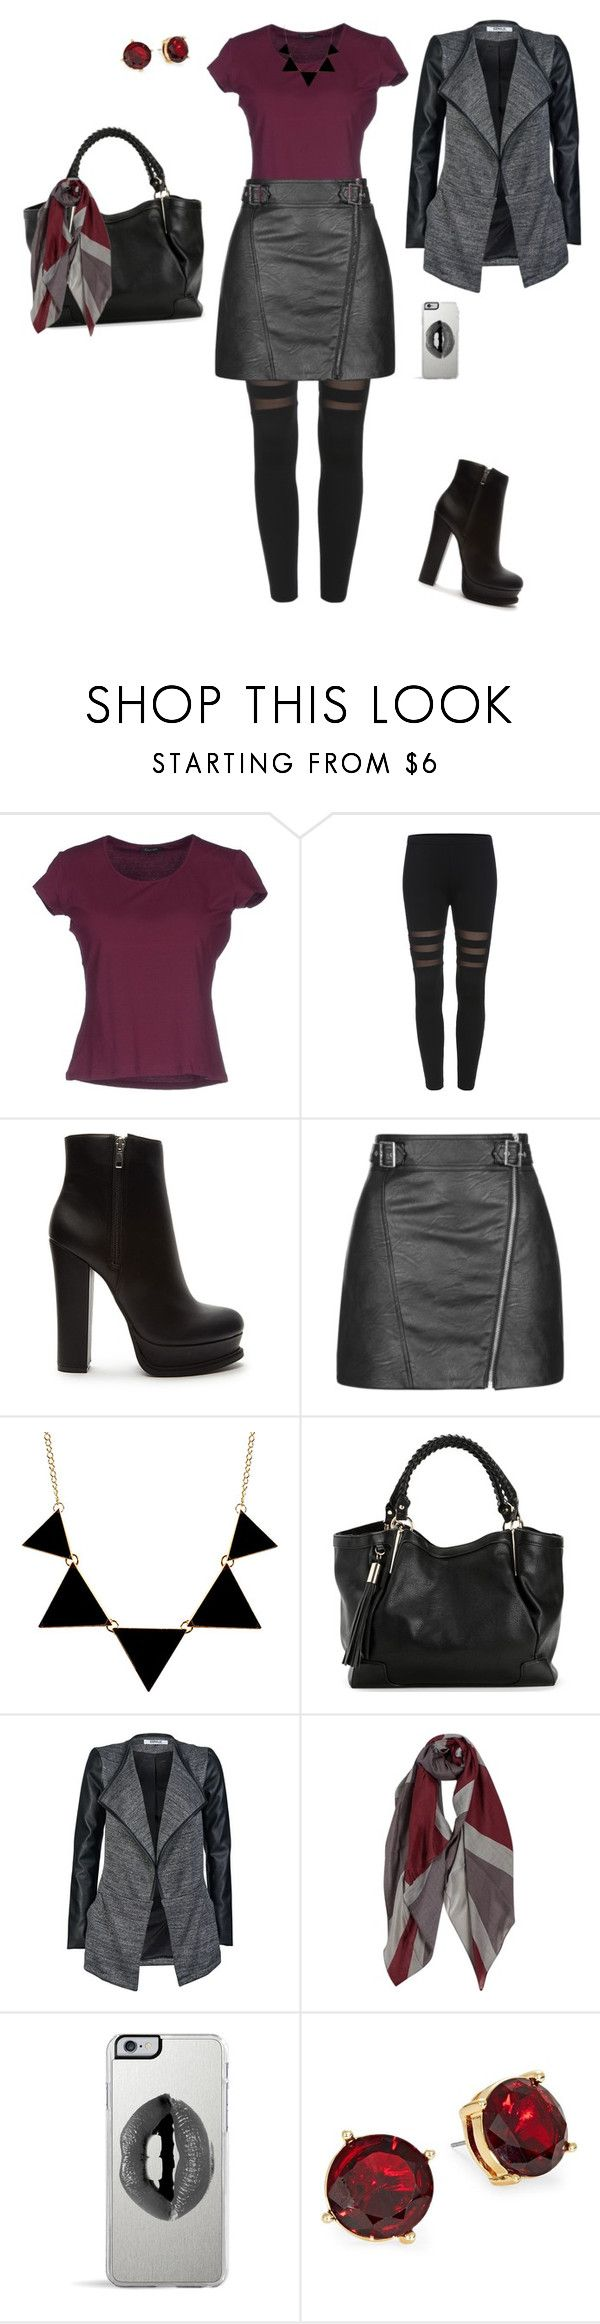 """""""Edgy fall outfit"""" by makeuphobbyist ❤ liked on Polyvore featuring Cruciani, Forever 21, Topshop, ONLY, Lipsy and Lauren Ralph Lauren"""